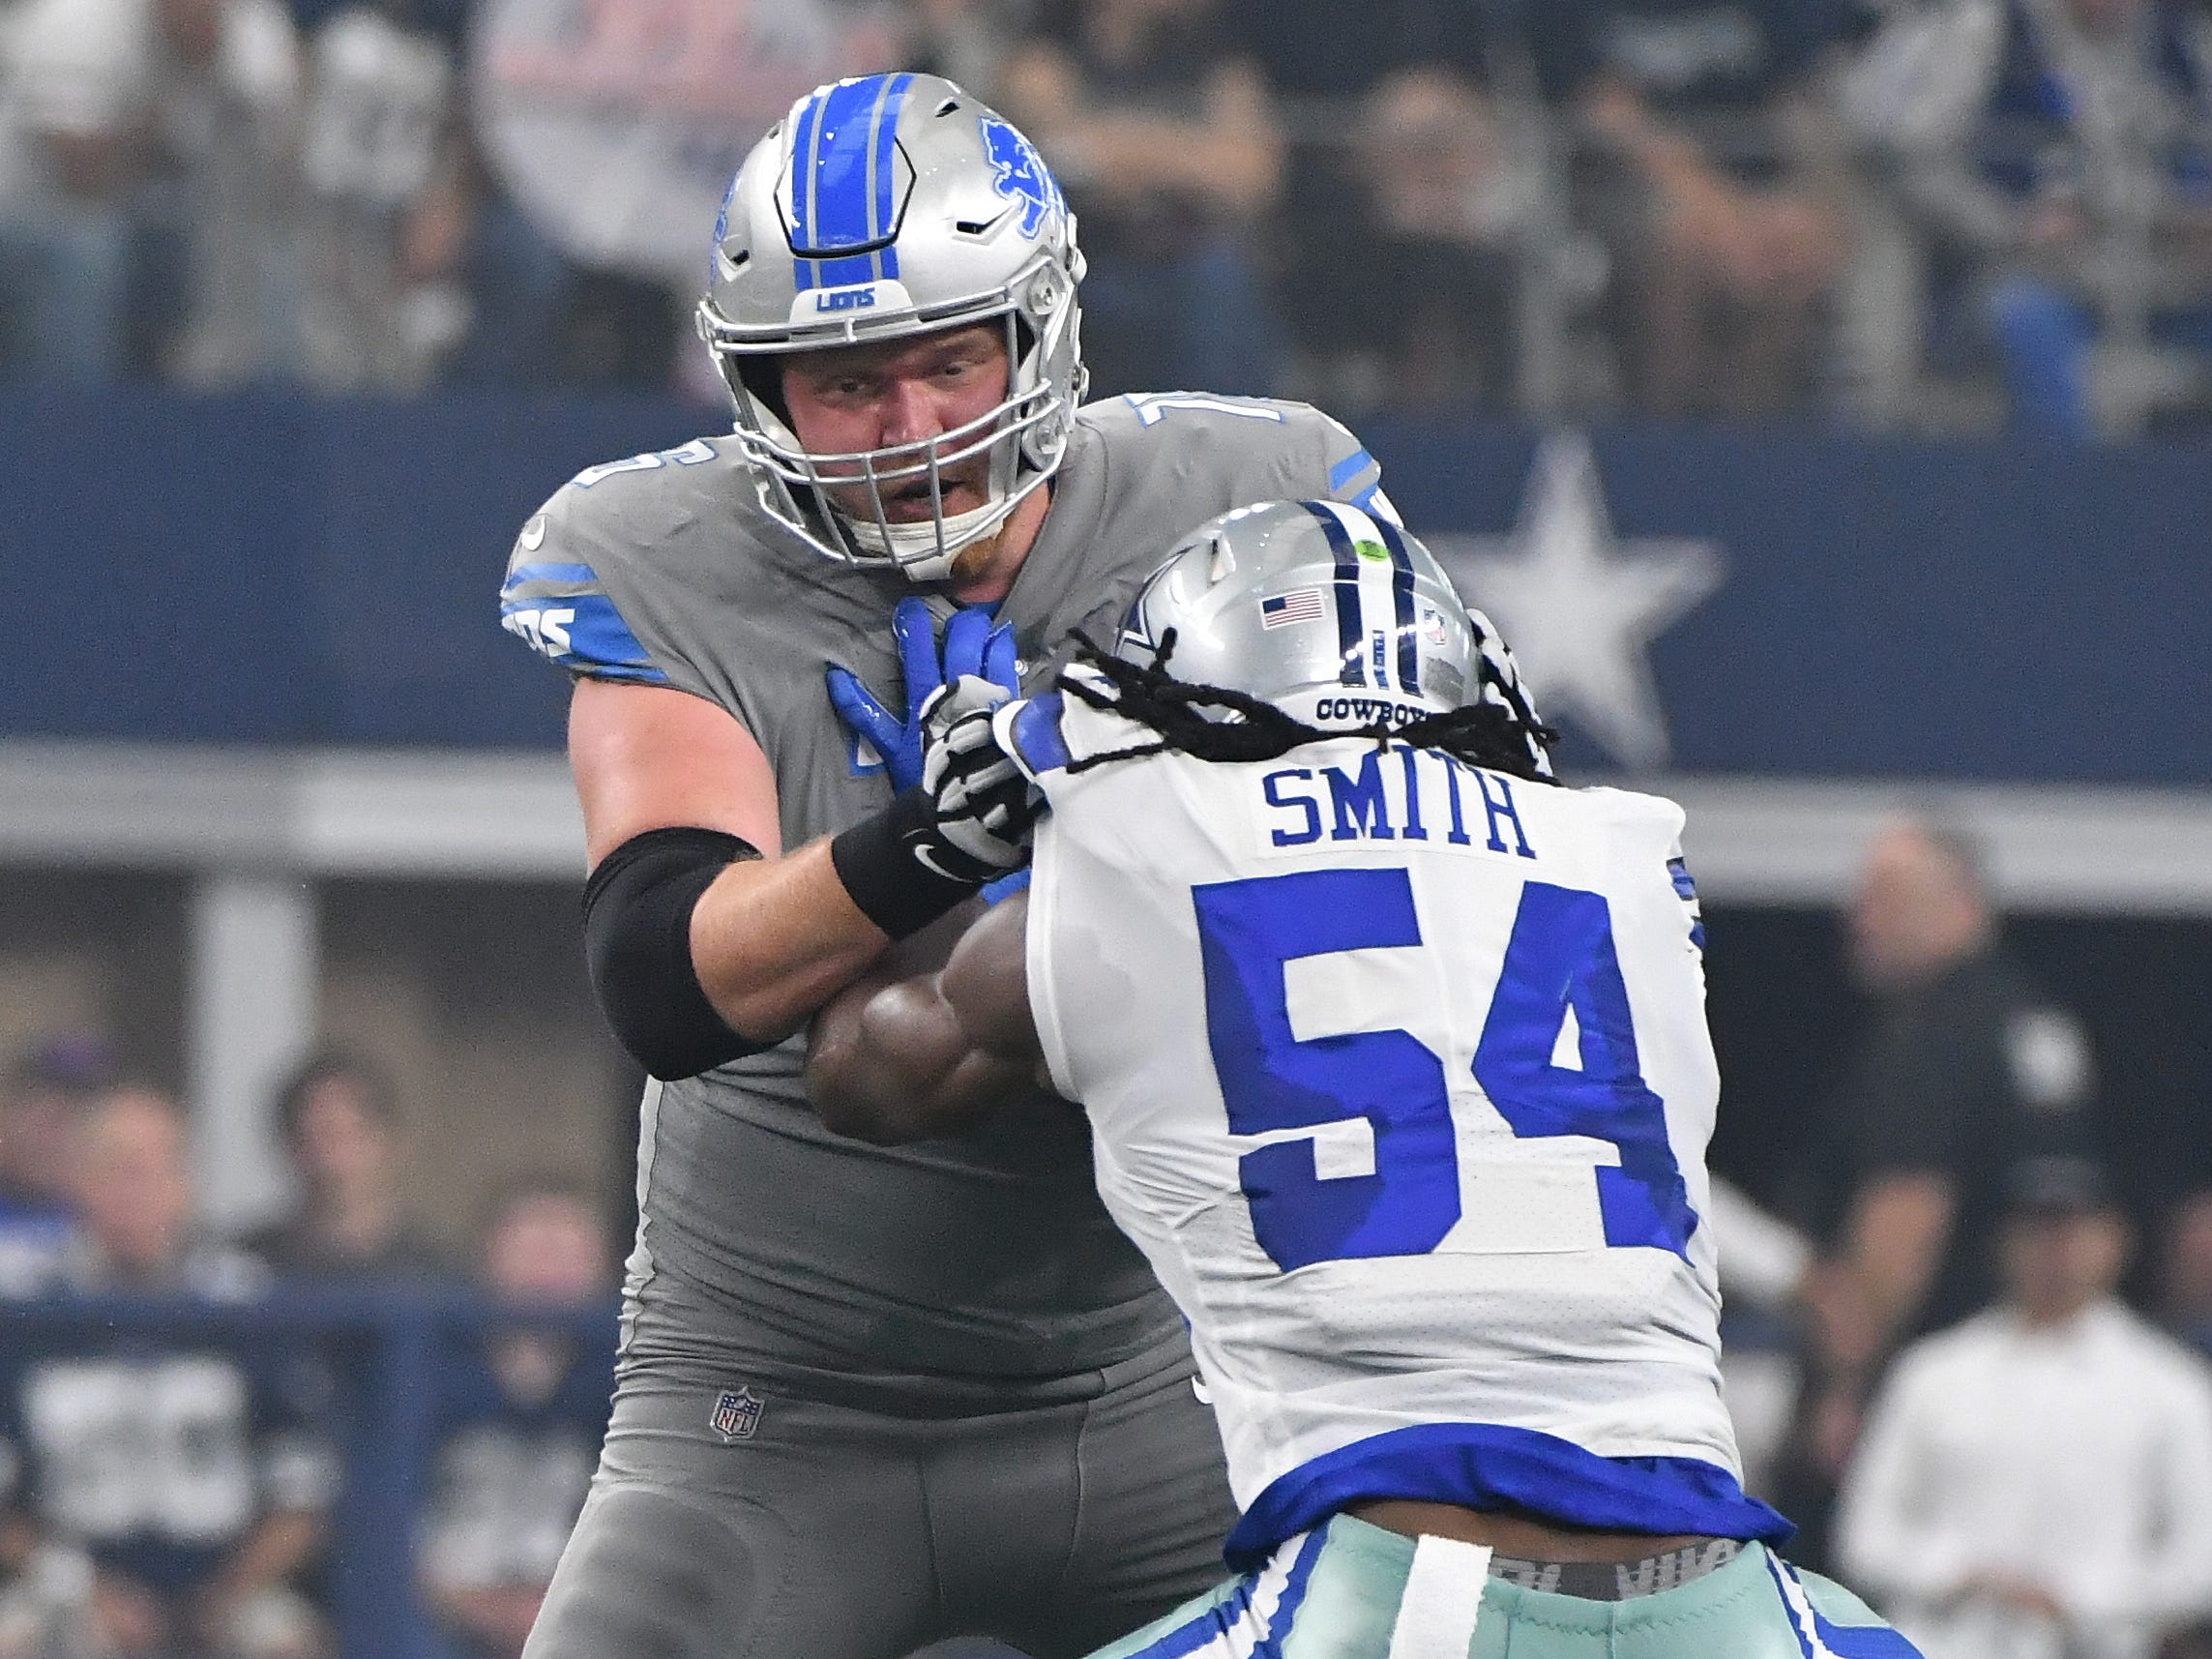 Lions T.J. Lang works against Cowboys' Jaylon Smith in the first quarter.  Lang went out of the game after this play in the first quarter.